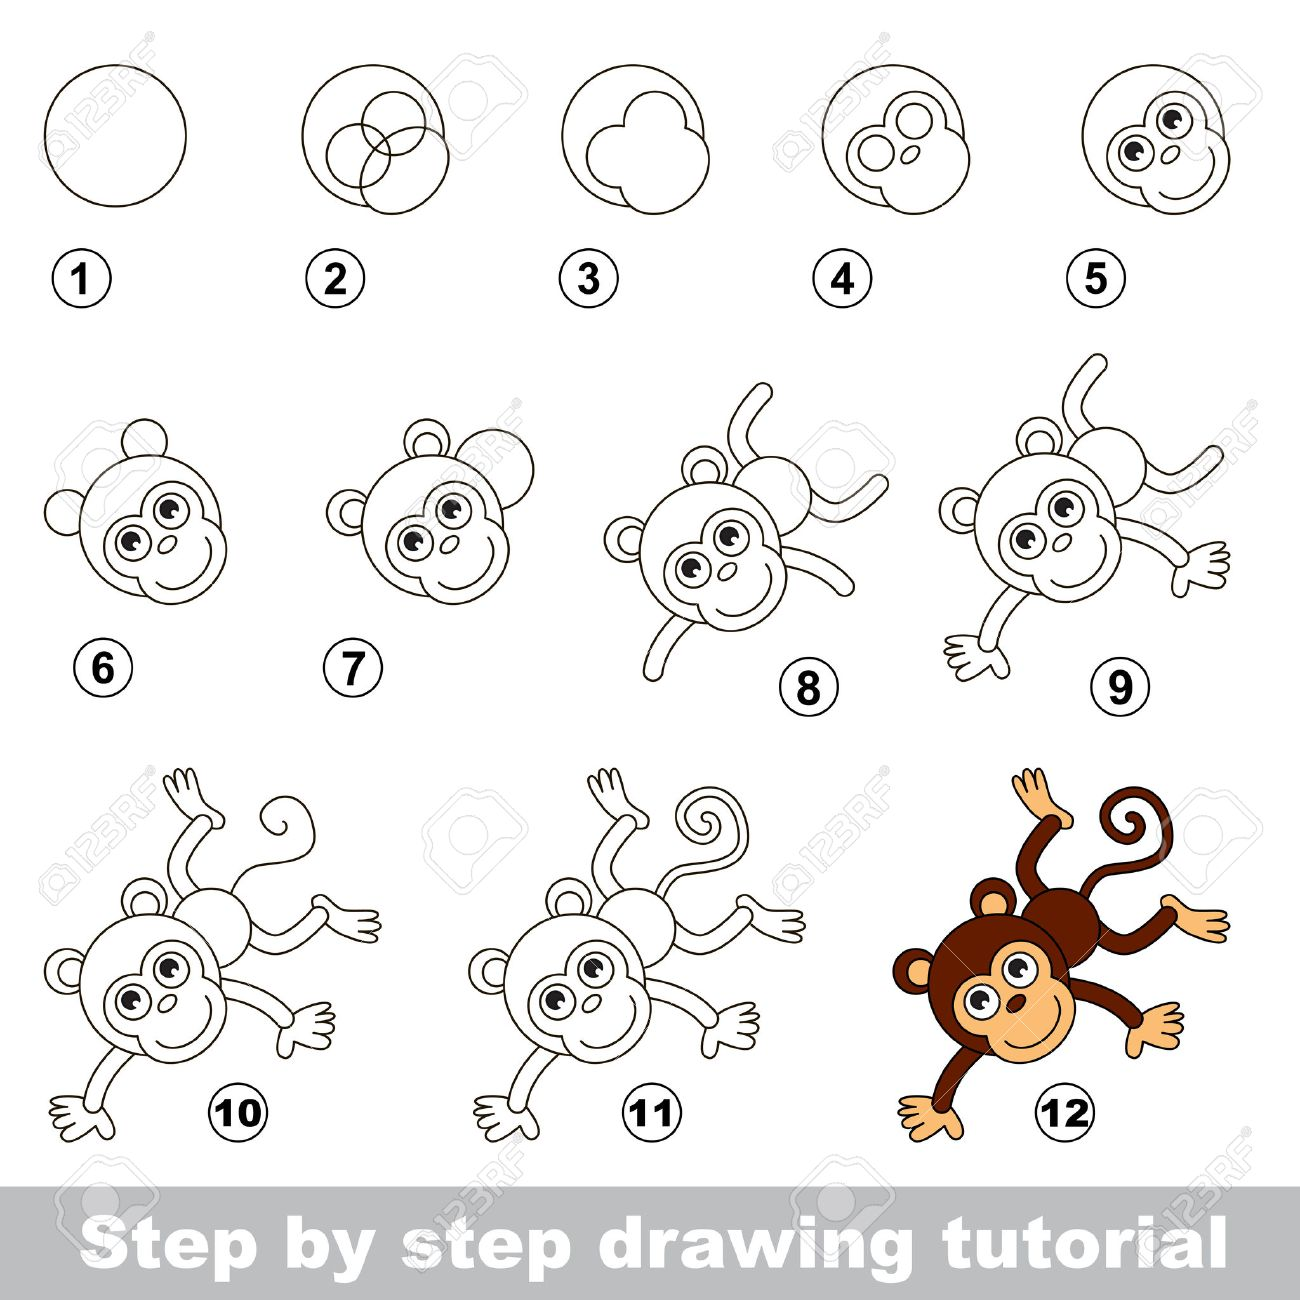 Step by step drawing tutorial. Visual game for kids. How to draw..